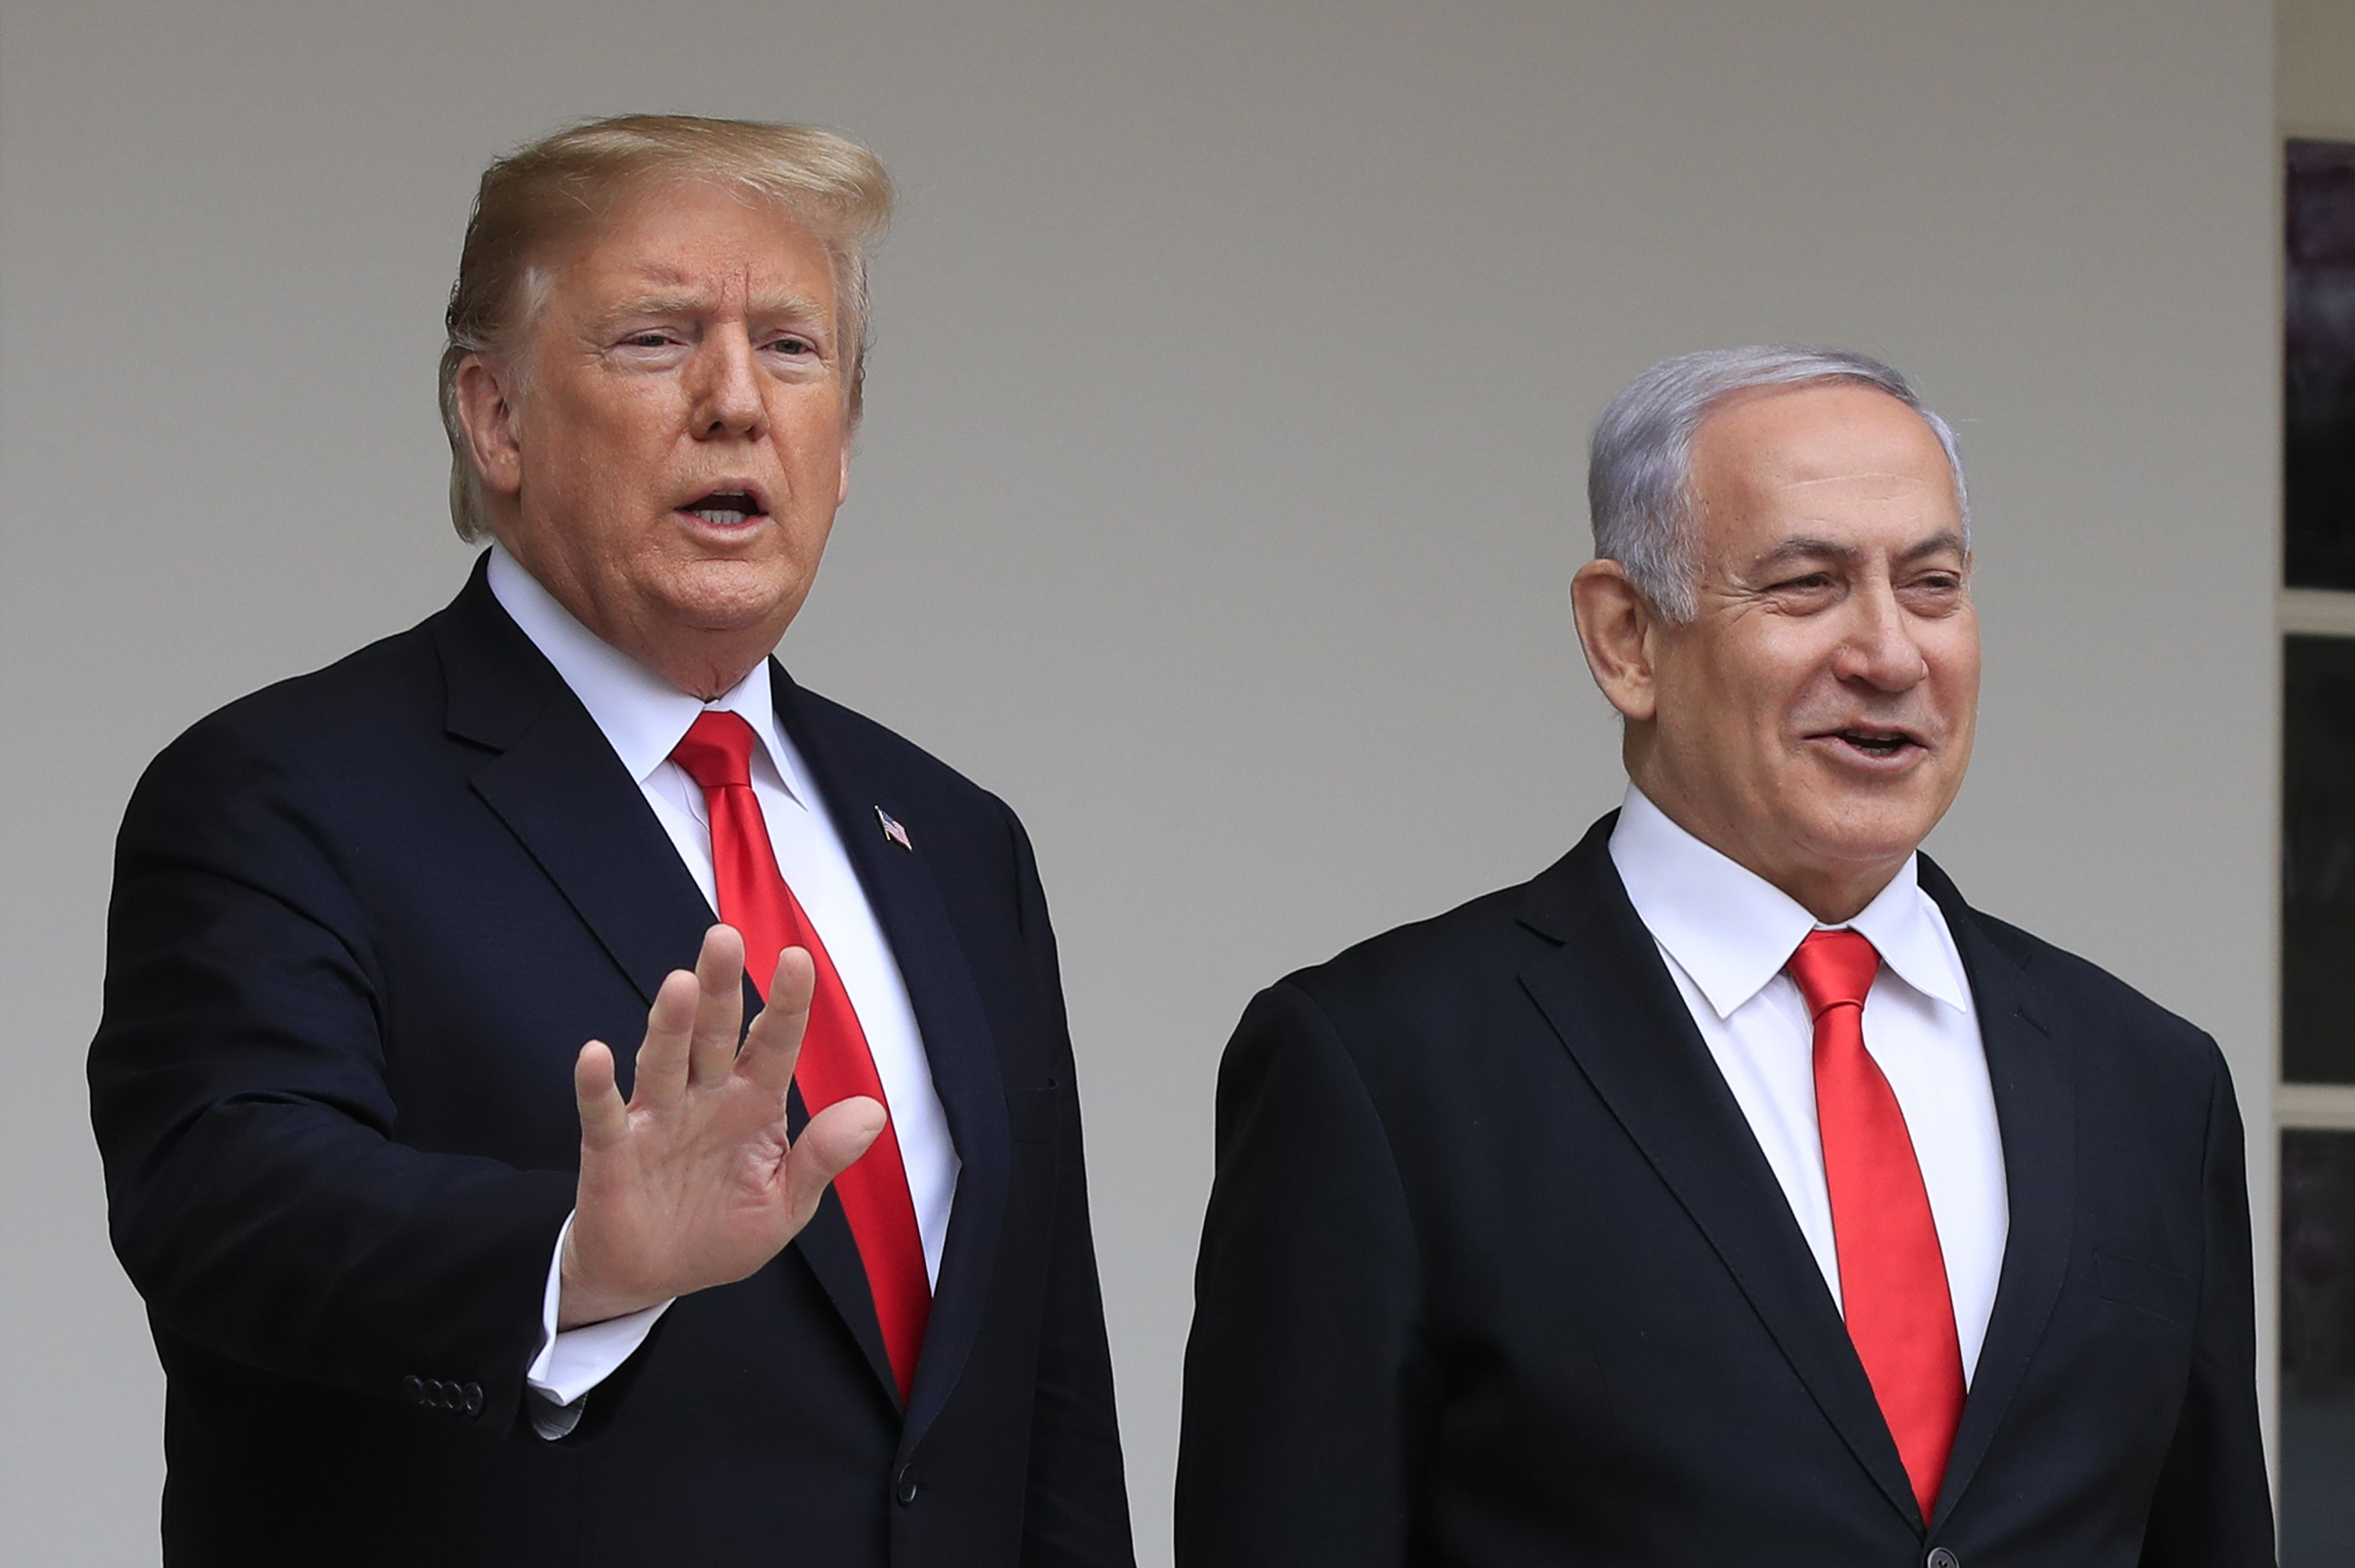 Israel to name new community on the Golan Heights after Trump, Netanyahu says